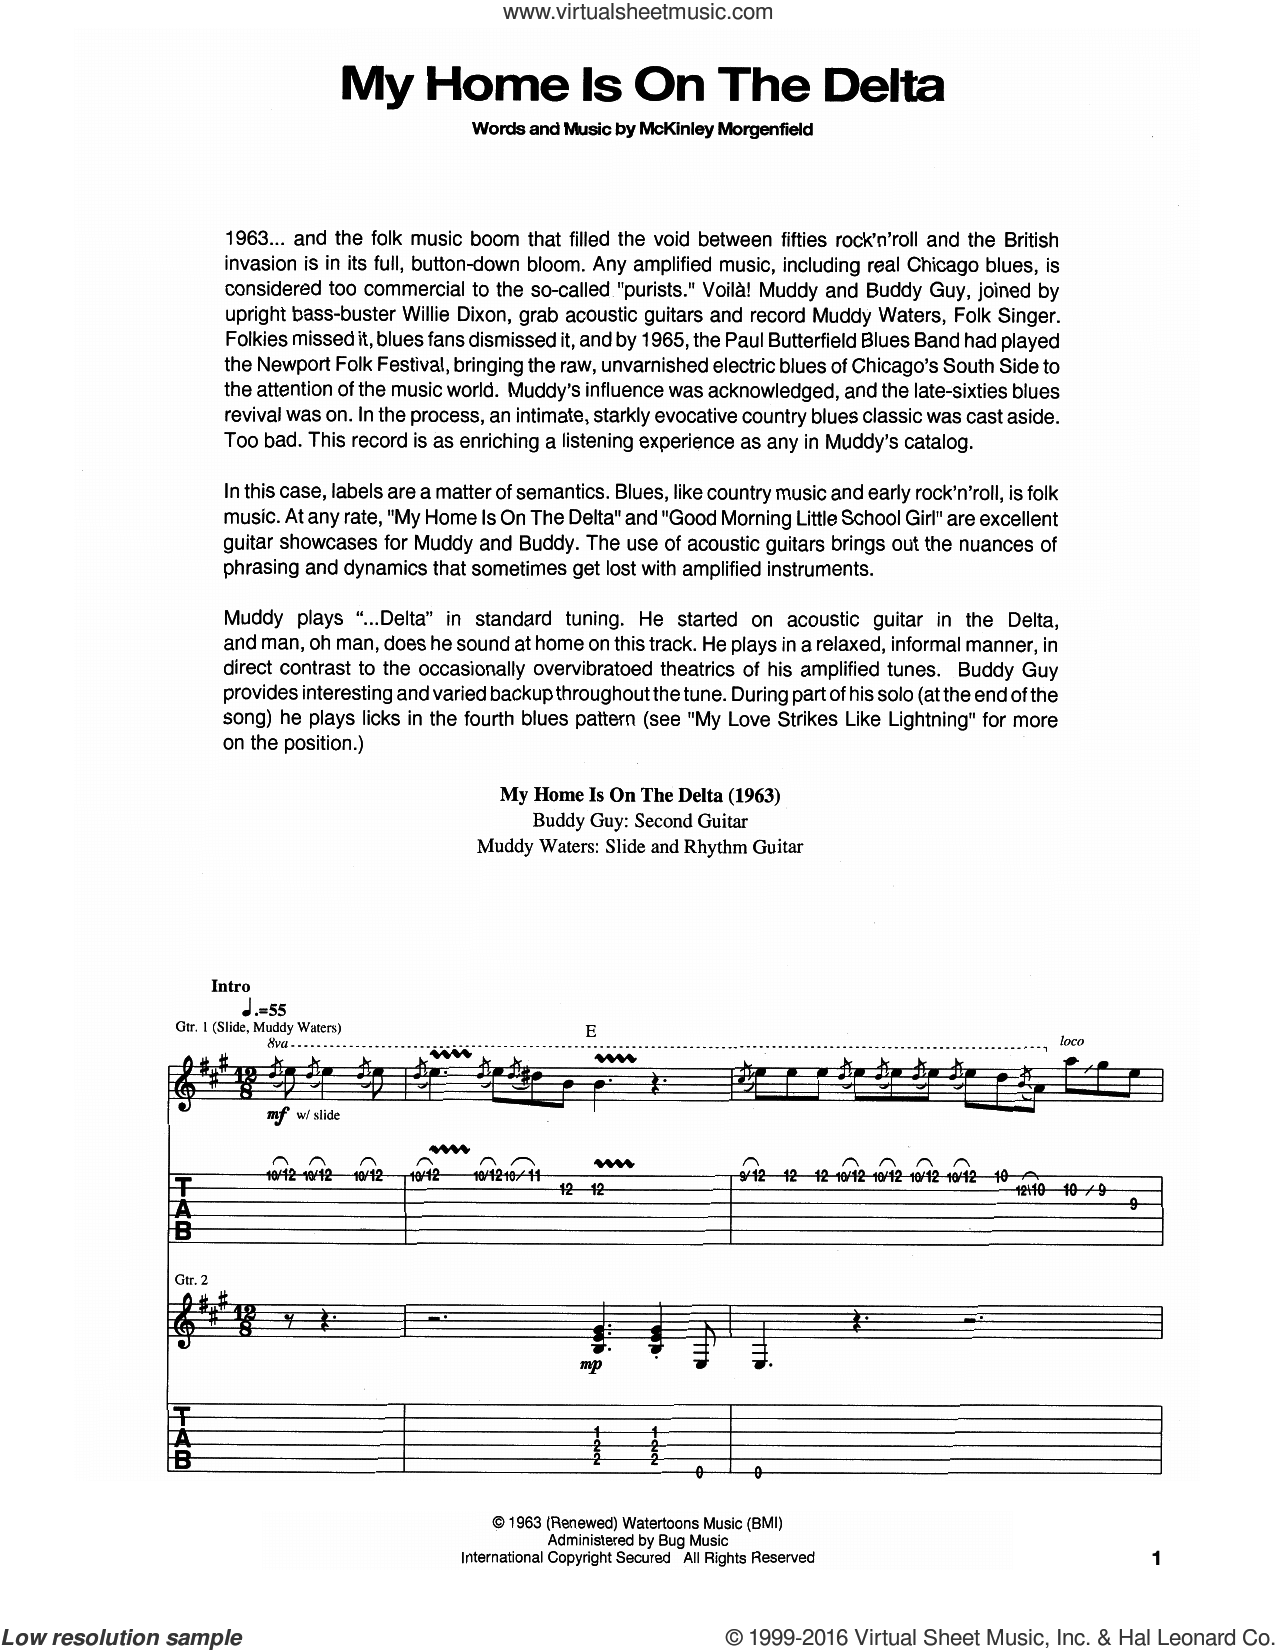 My Home Is On The Delta sheet music for guitar (tablature) by Muddy Waters. Score Image Preview.